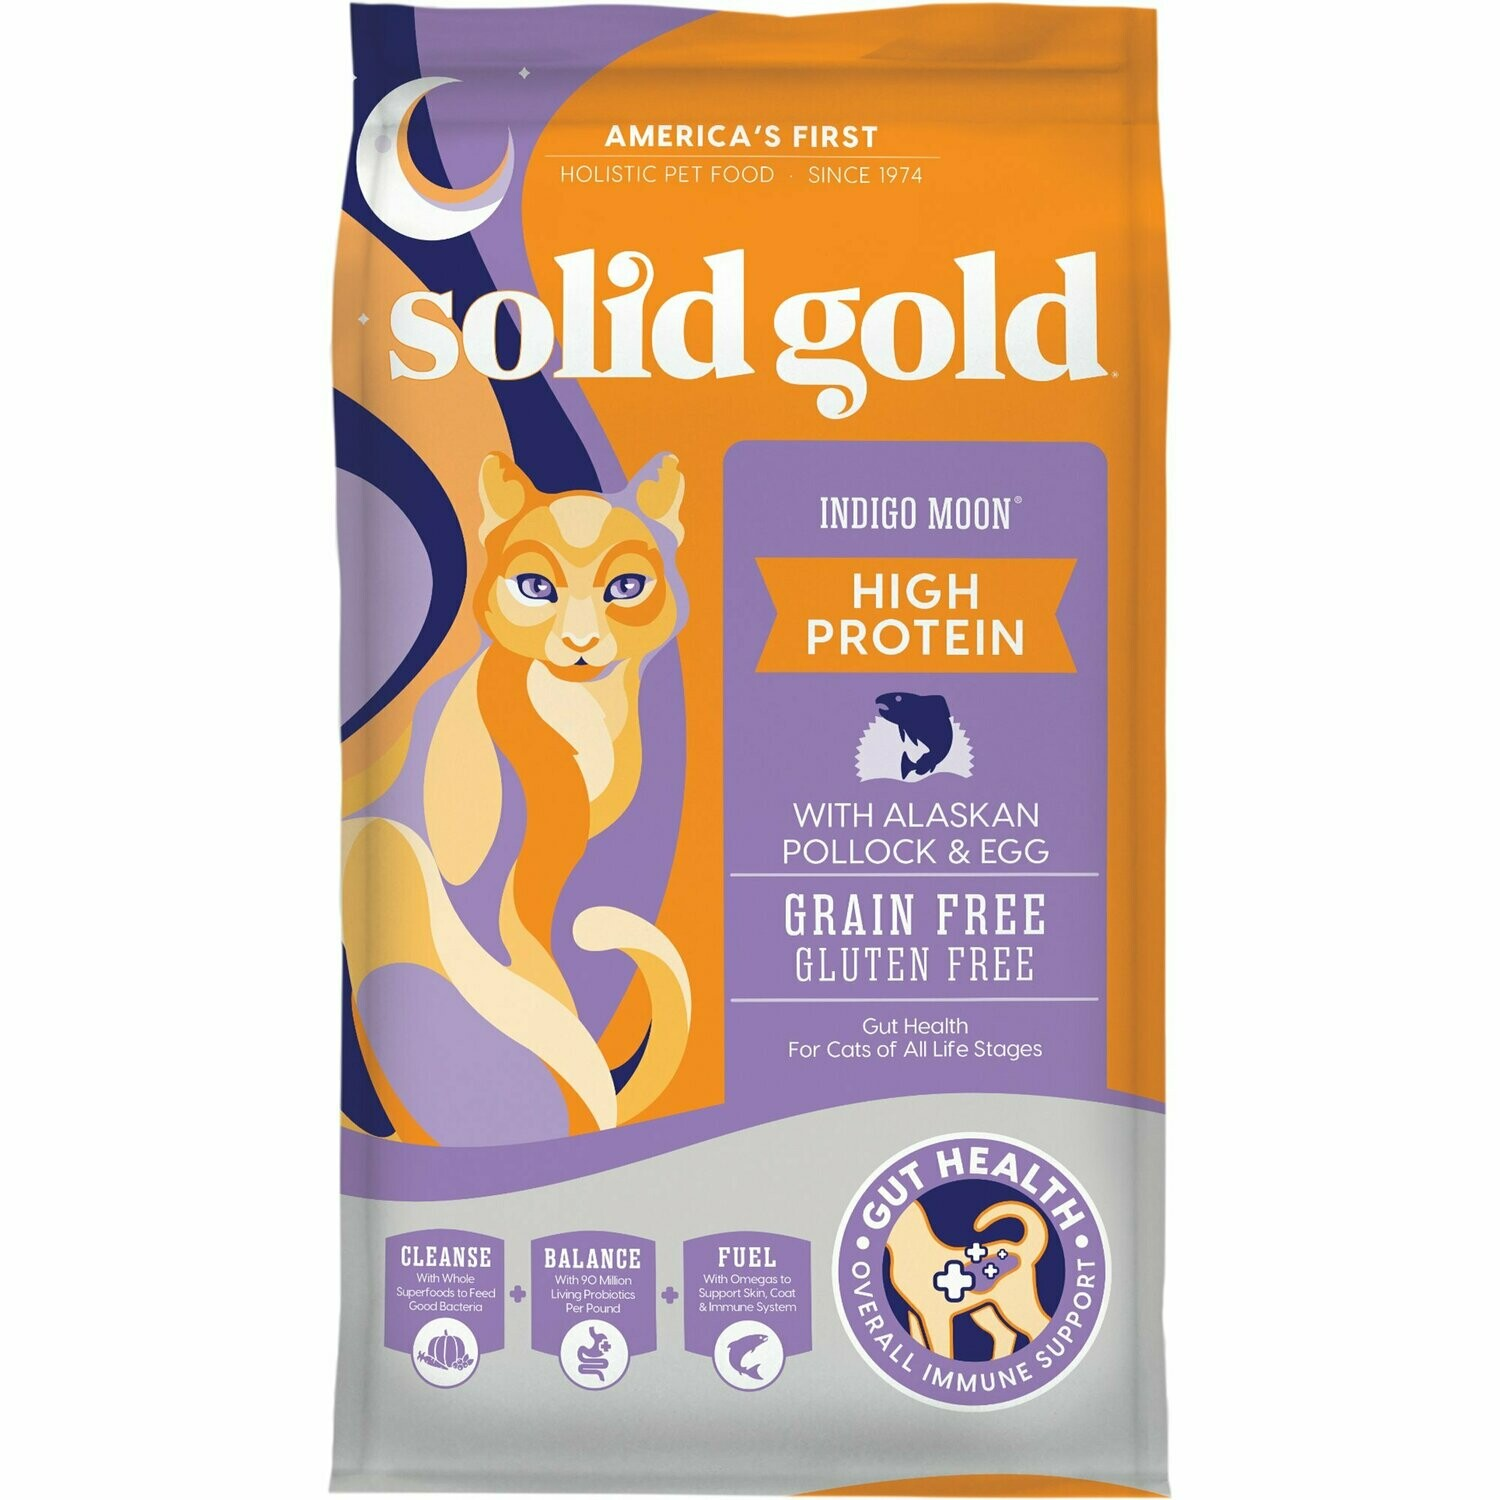 Solid Gold Indigo Moon High Protein Dry Cat Food with Alaskan Pollock and Egg, 6 lbs (12/18) (A.N3)